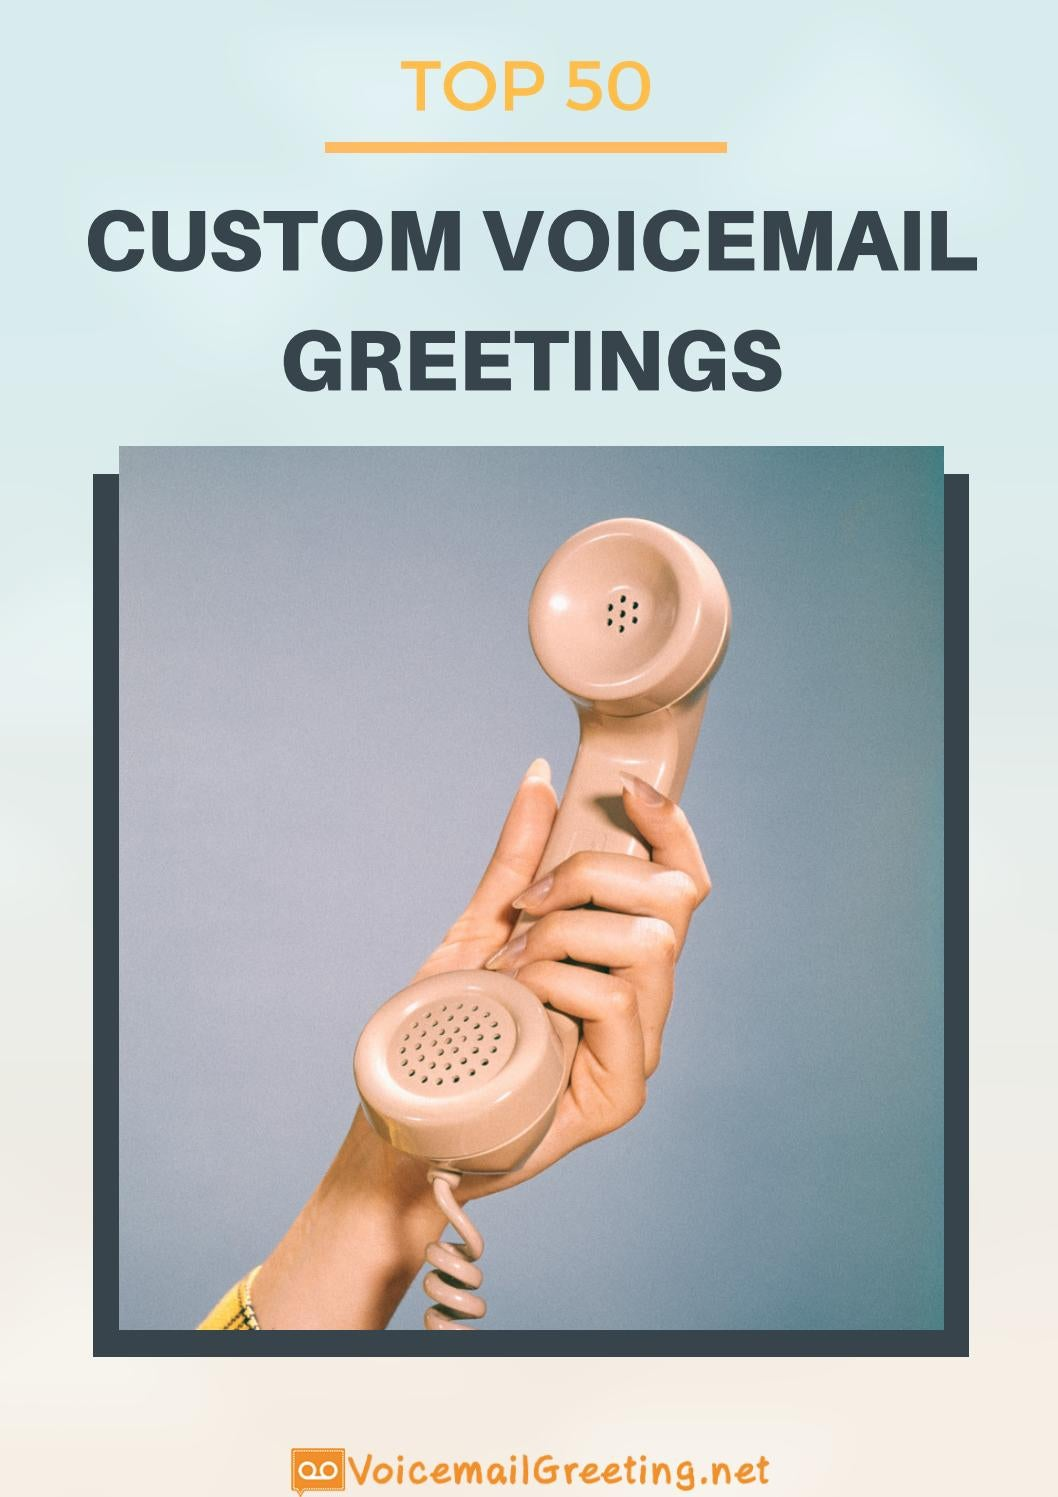 Top 50 Custom Voicemail Greetings By Voicemail Greeting Issuu